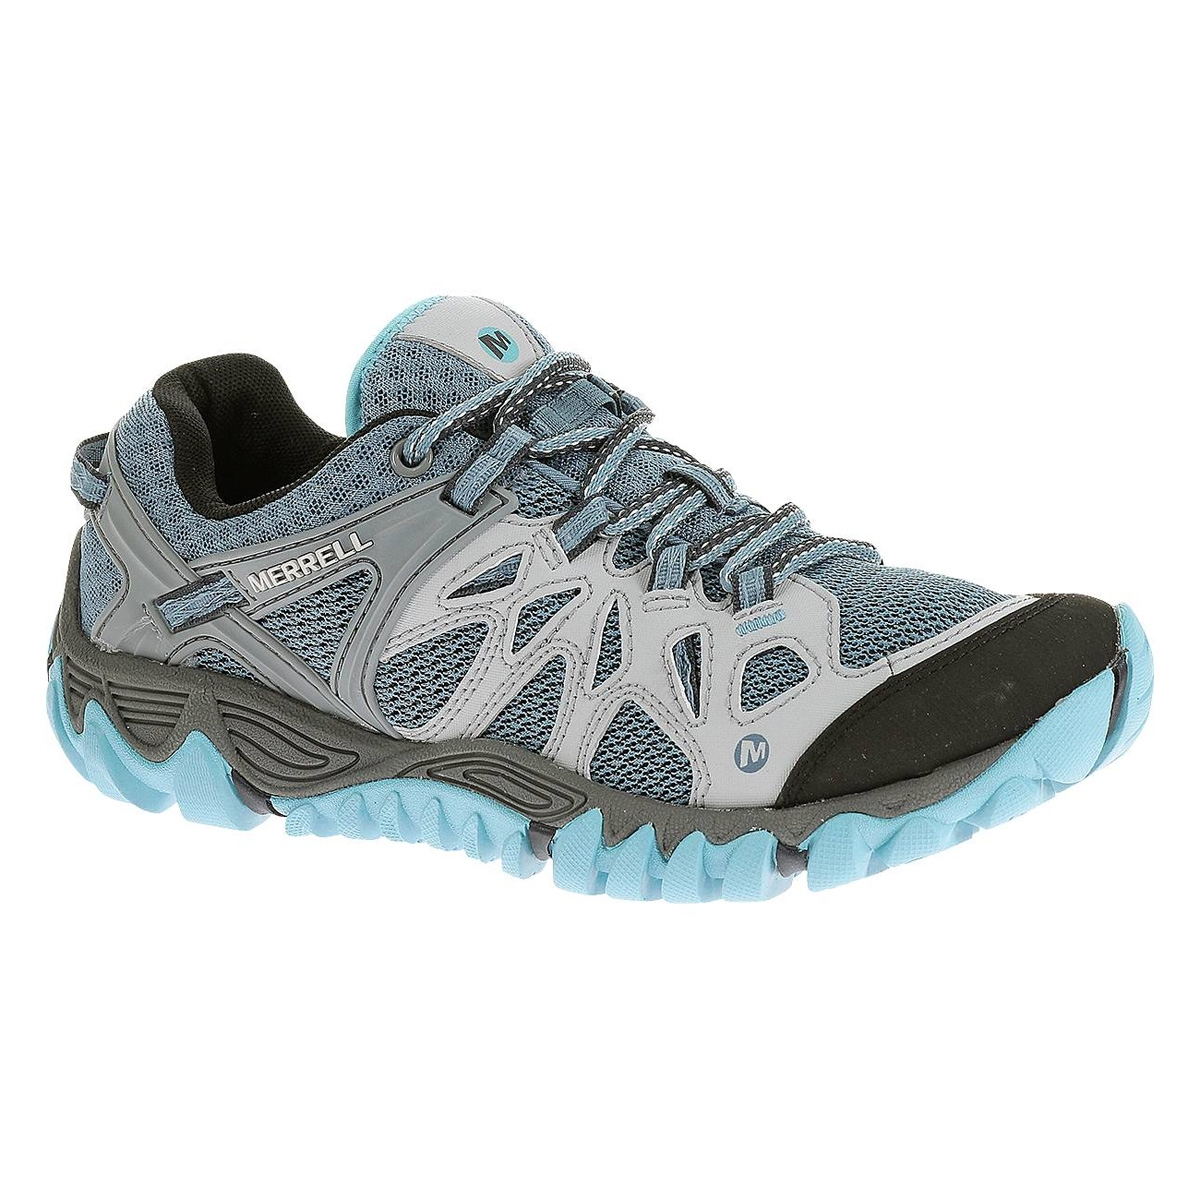 high quality factory authentic select for original Merrell All Out Blaze Aero Sport Walking Shoes (Women's) - Blue Heaven